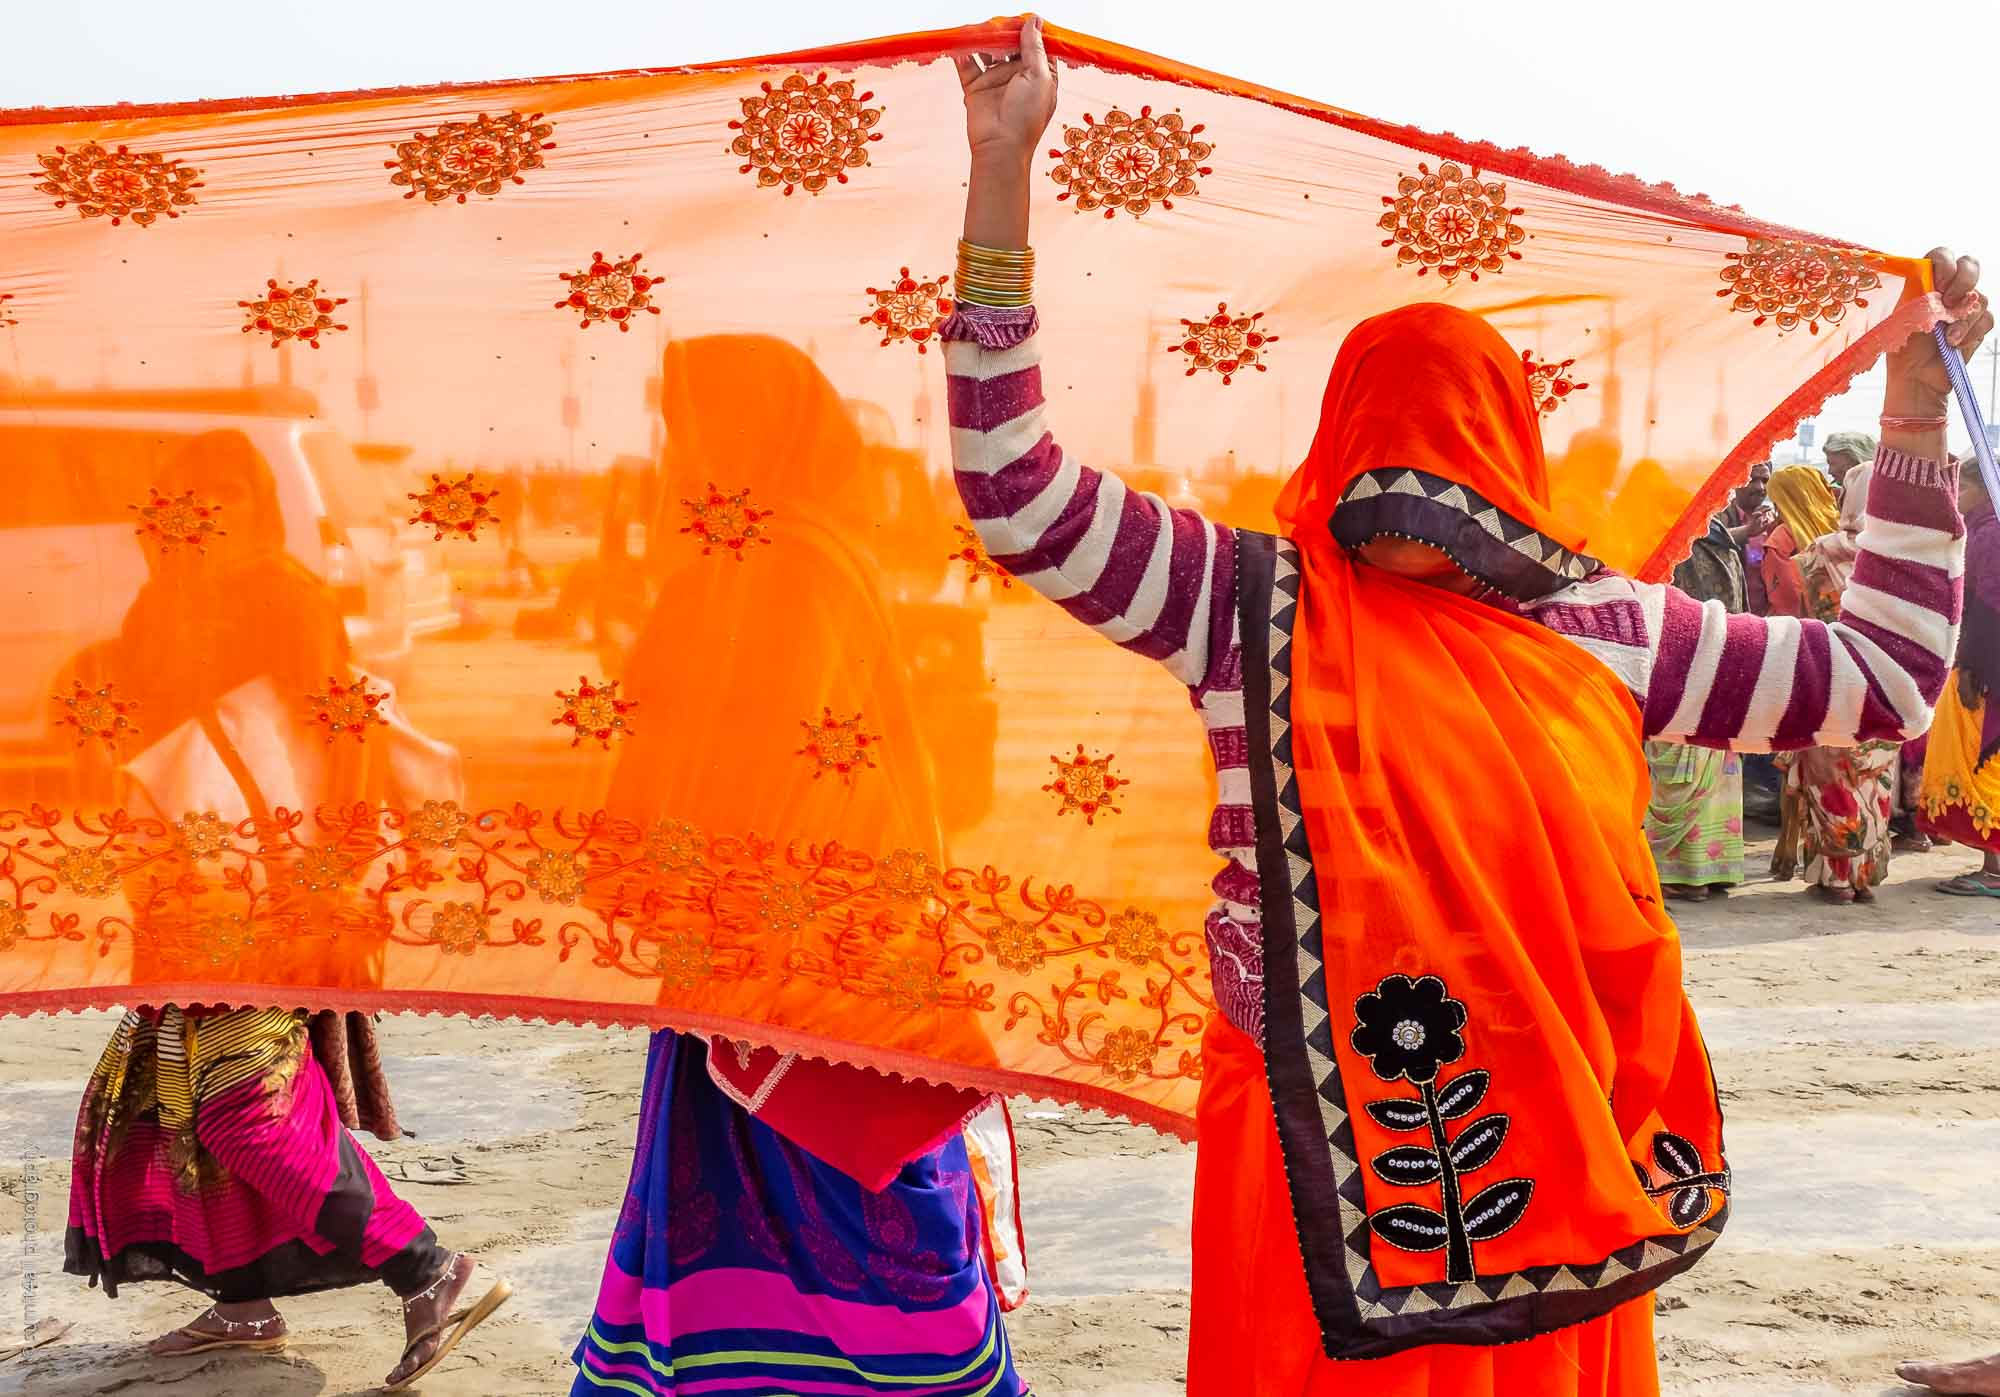 Colorful Saris at the Kumbh Mela 2019 in Allahabad / Prayagraj India